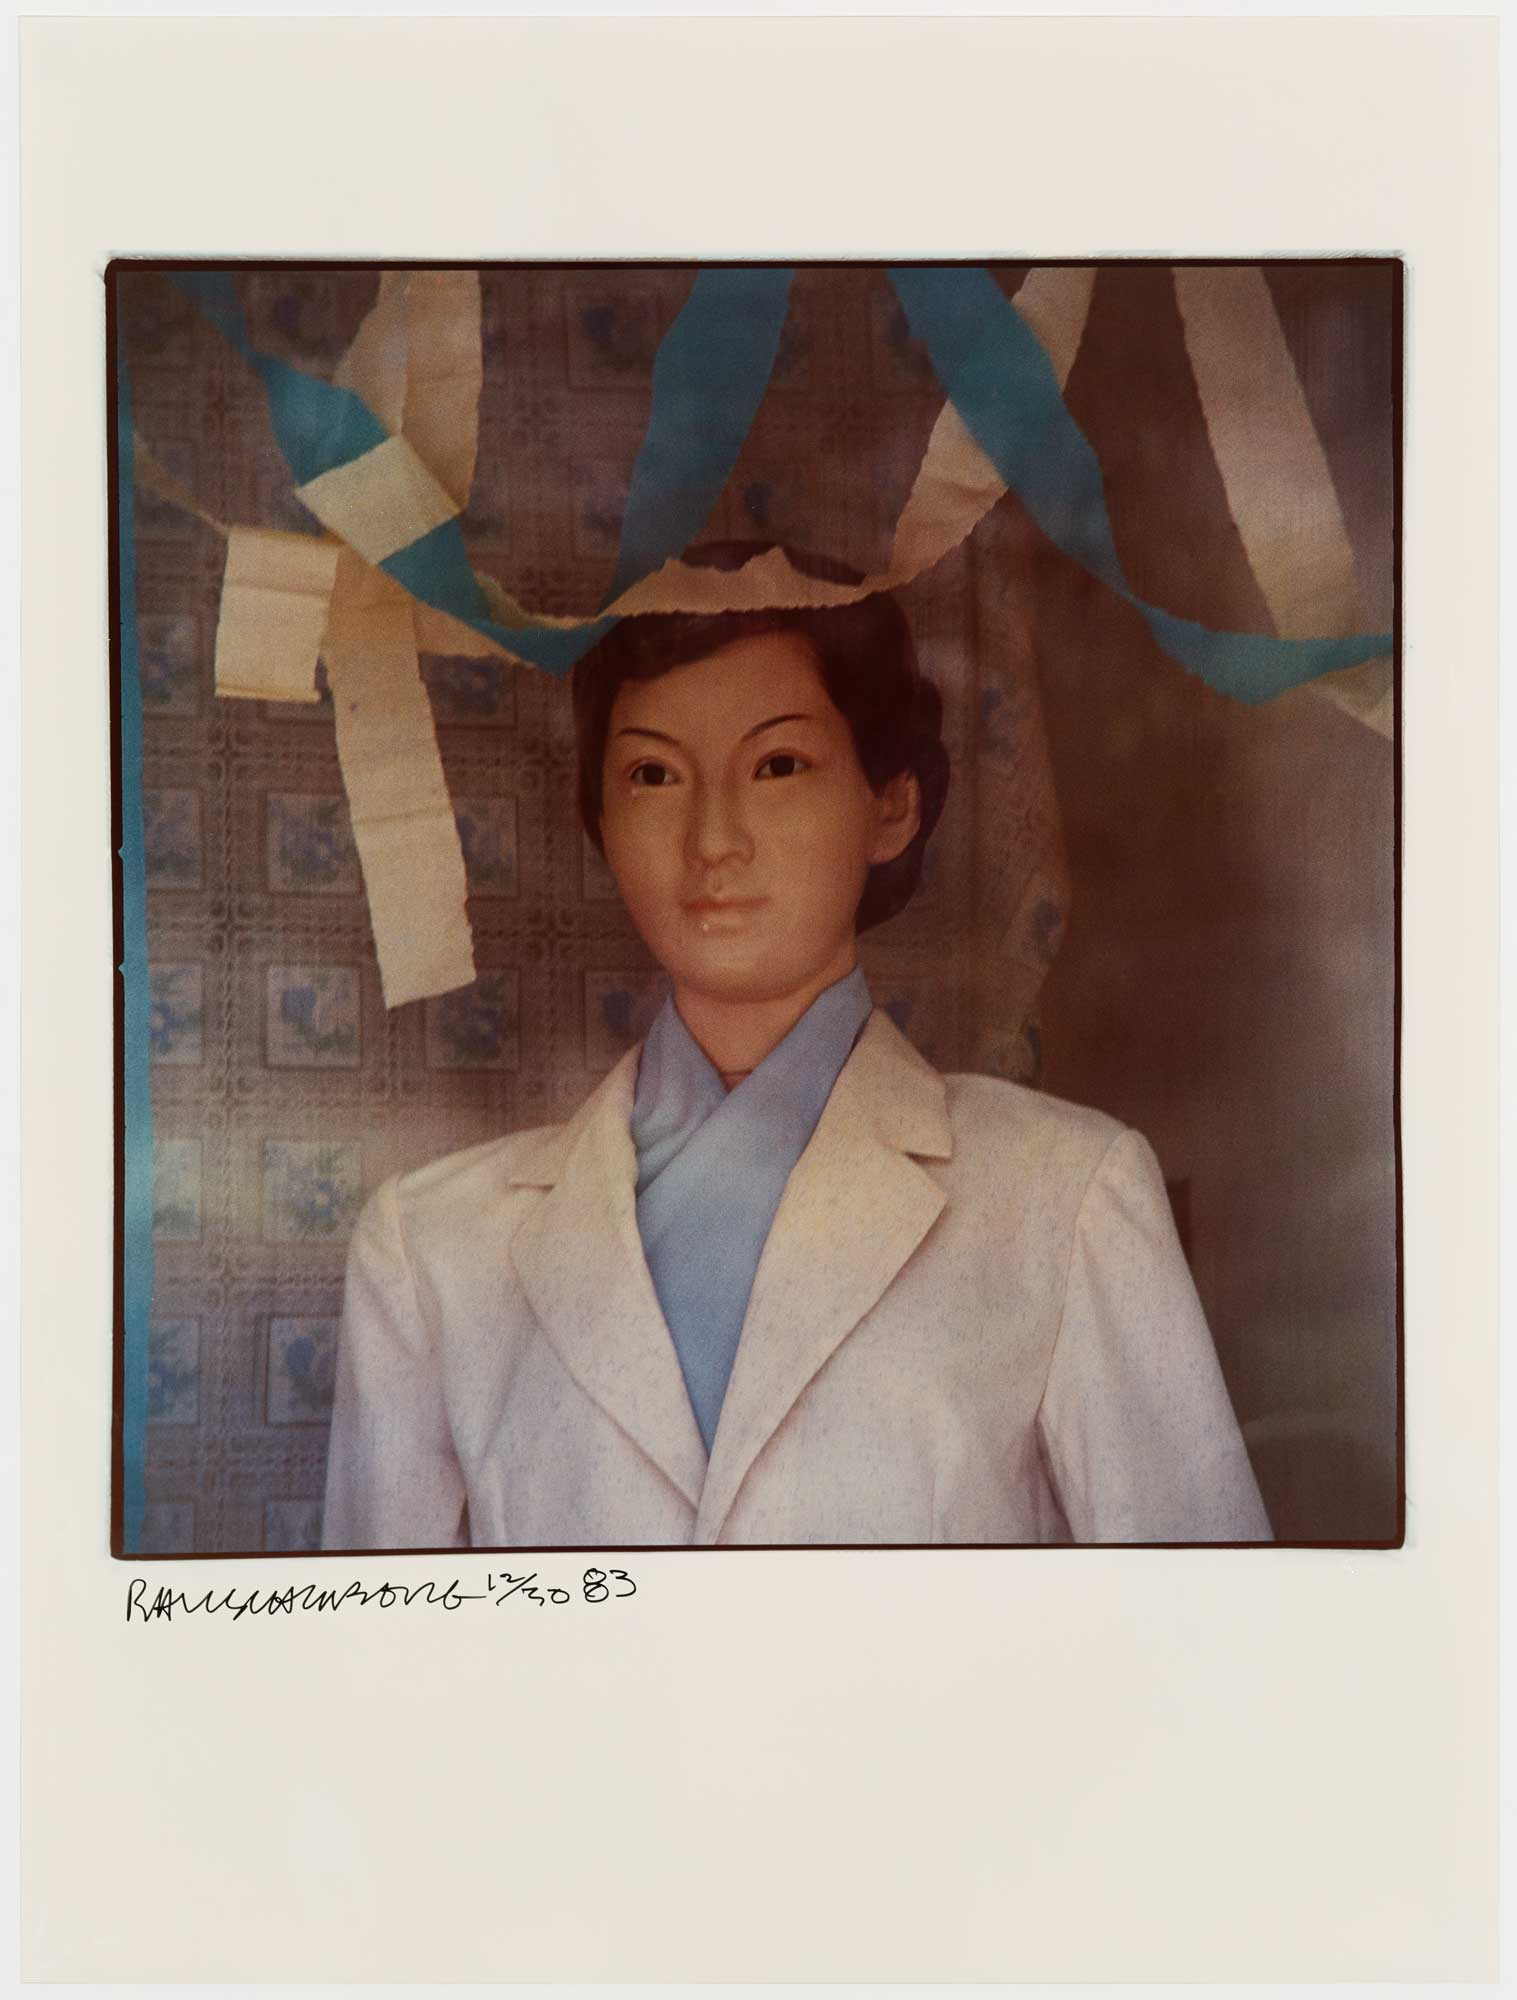 Blue Lady by Robert Rauschenberg